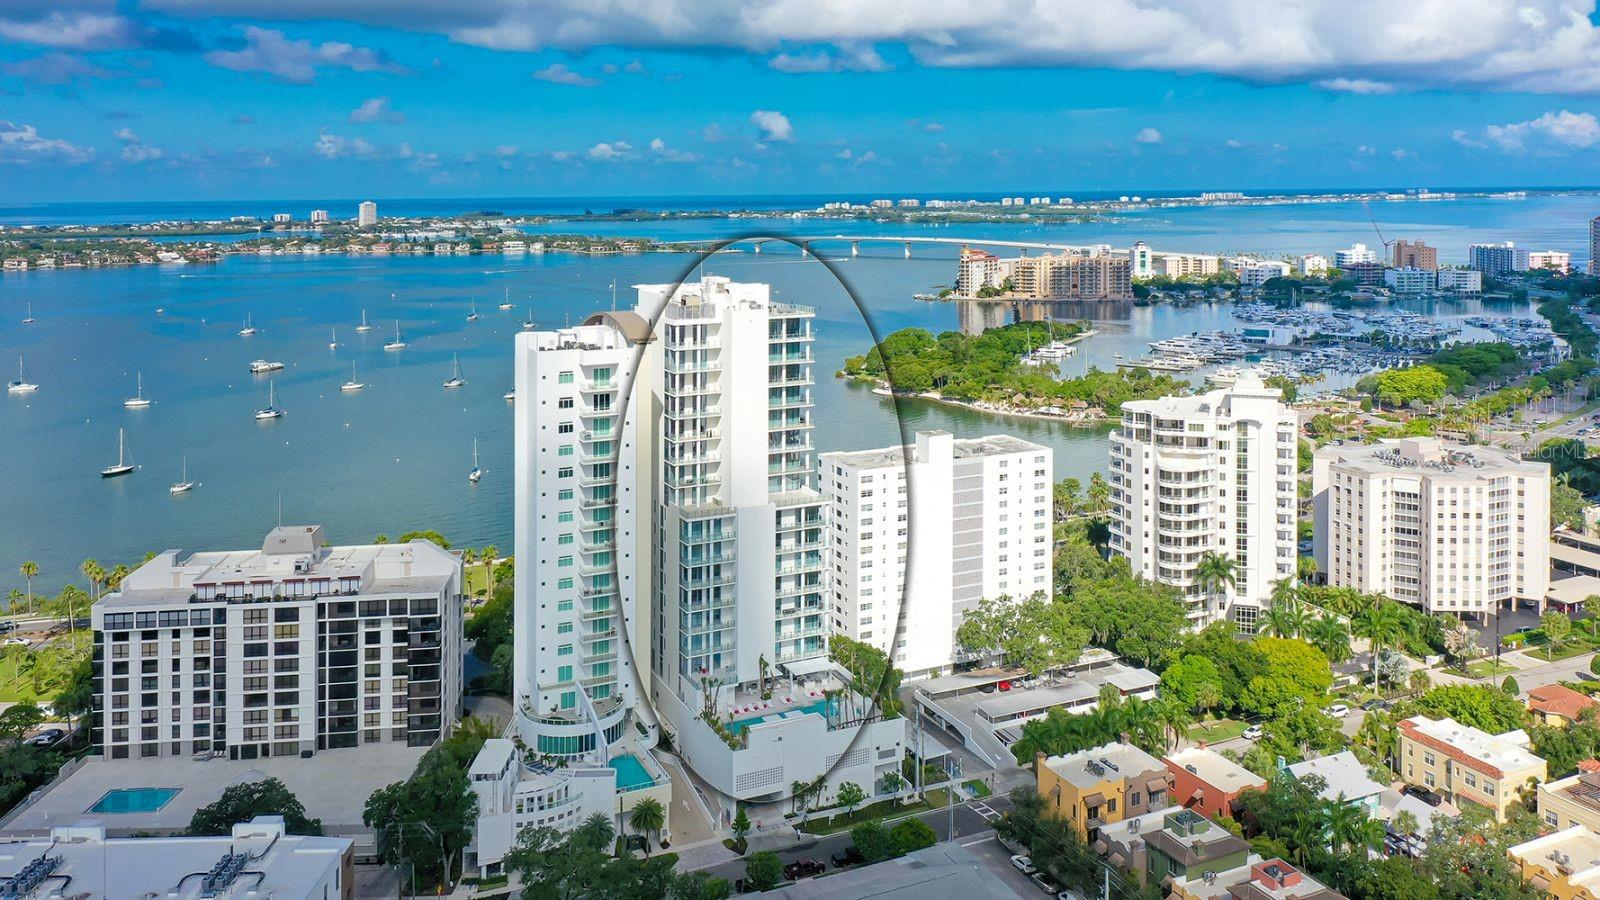 Condo for sale at 605 S Gulfstream Ave #3w, Sarasota, FL 34236 - MLS Number is A4470704